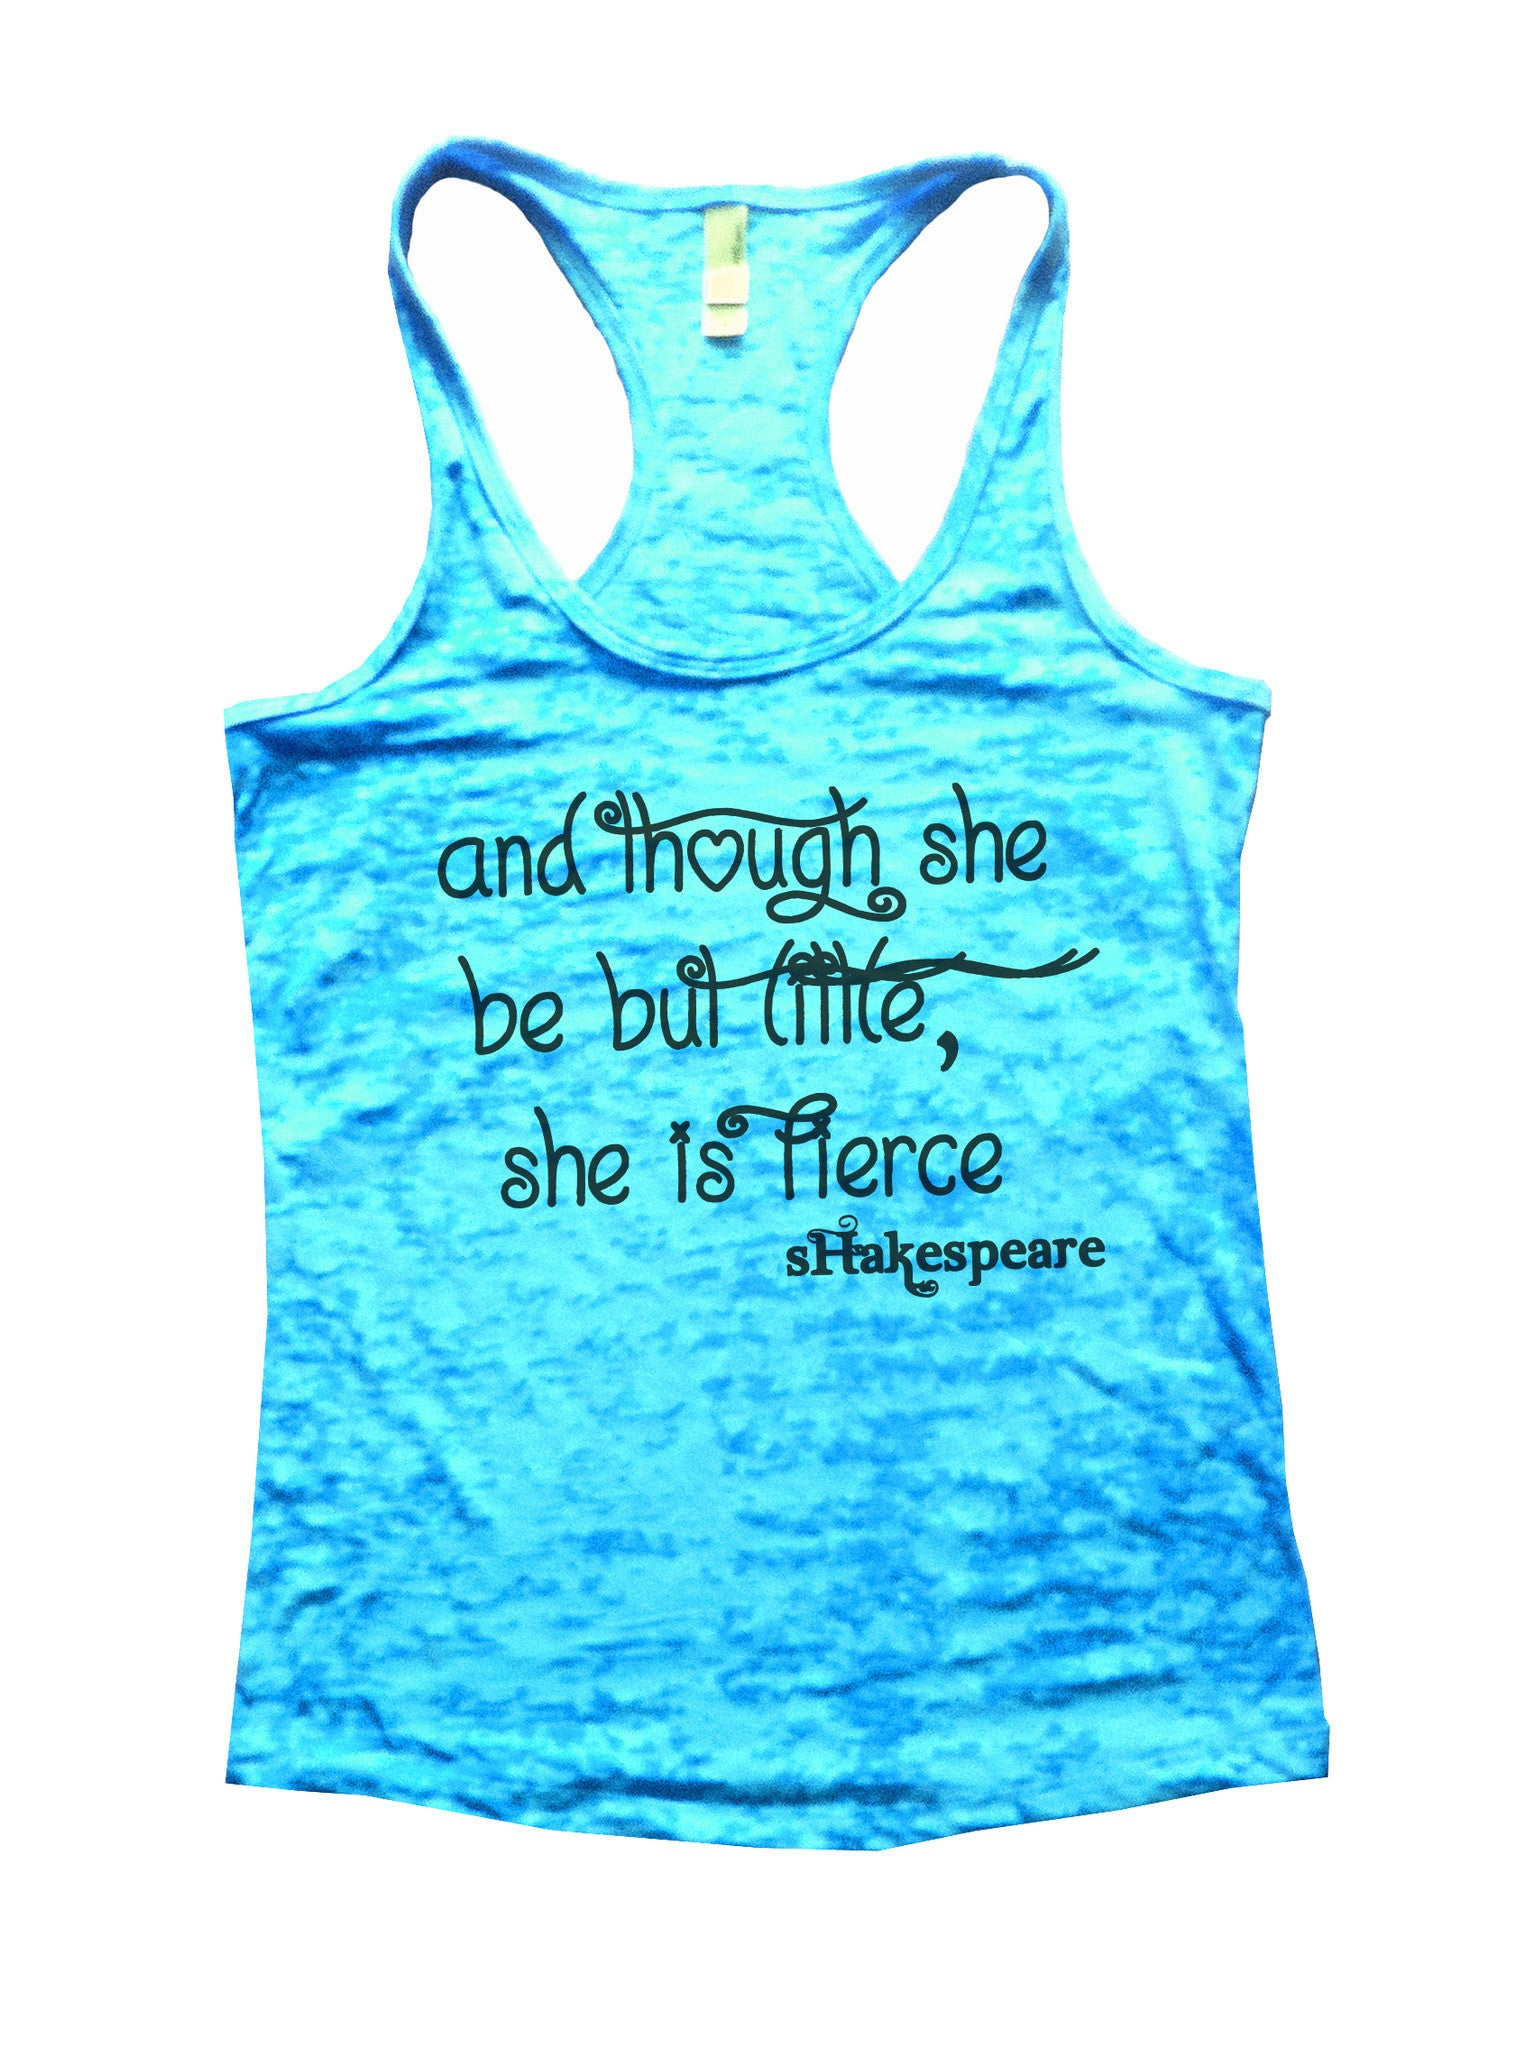 And Though She Be But Little, She Is Fierce Shakespeare Burnout Tank Top By BurnoutTankTops.com - 527 - Funny Shirts Tank Tops Burnouts and Triblends  - 4